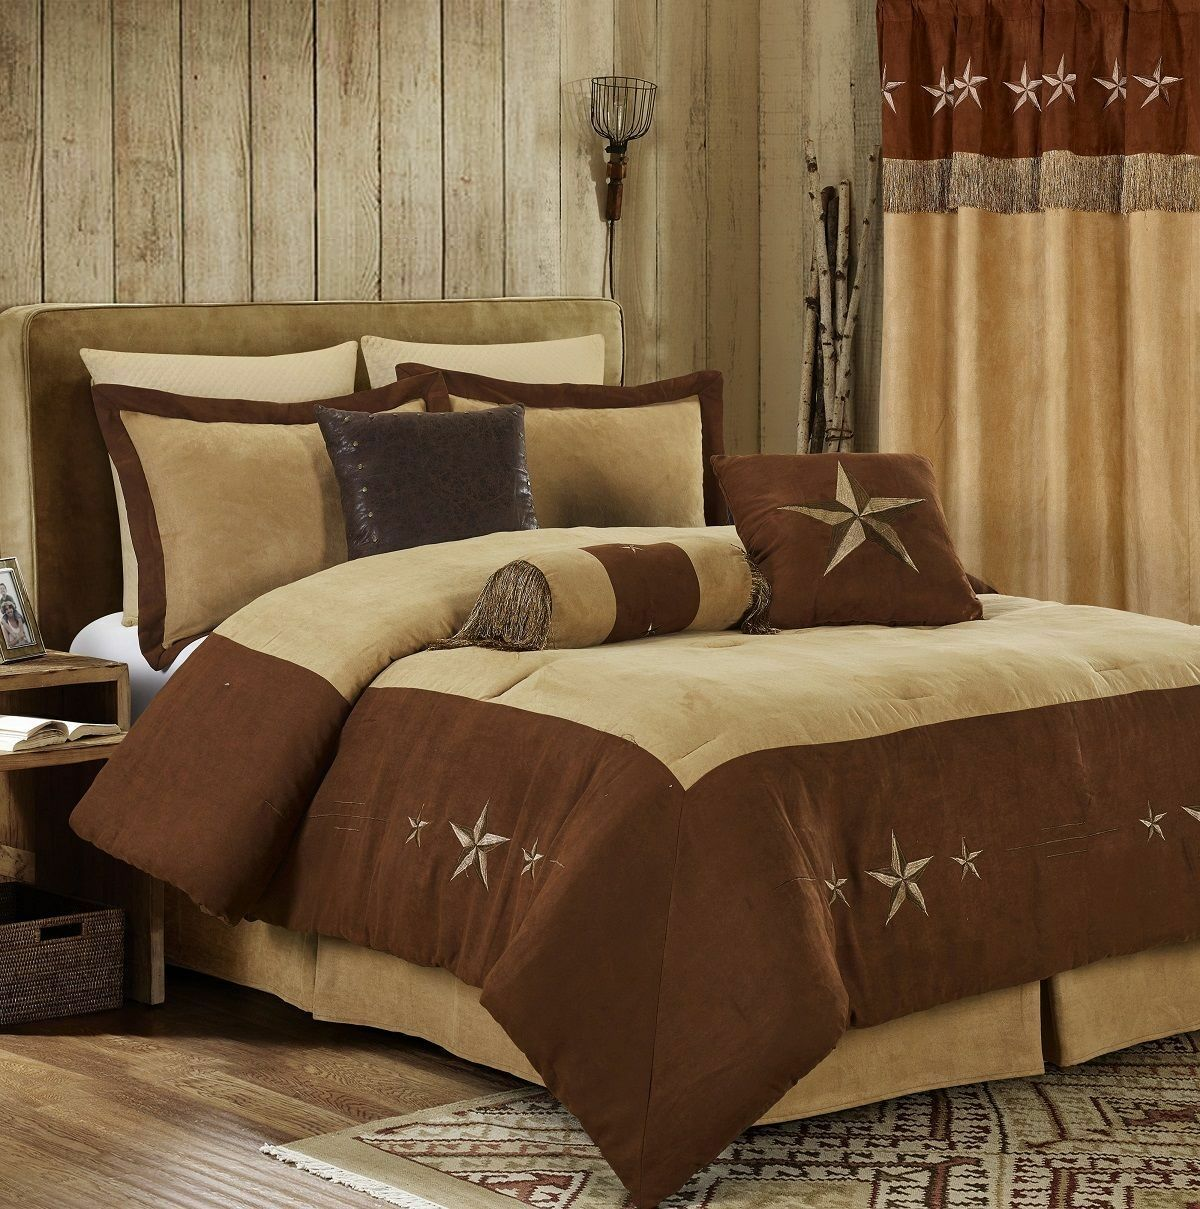 Rustic Brown Embroidery Texas Star Western Luxury Comforter Suede Leather 7 pcs